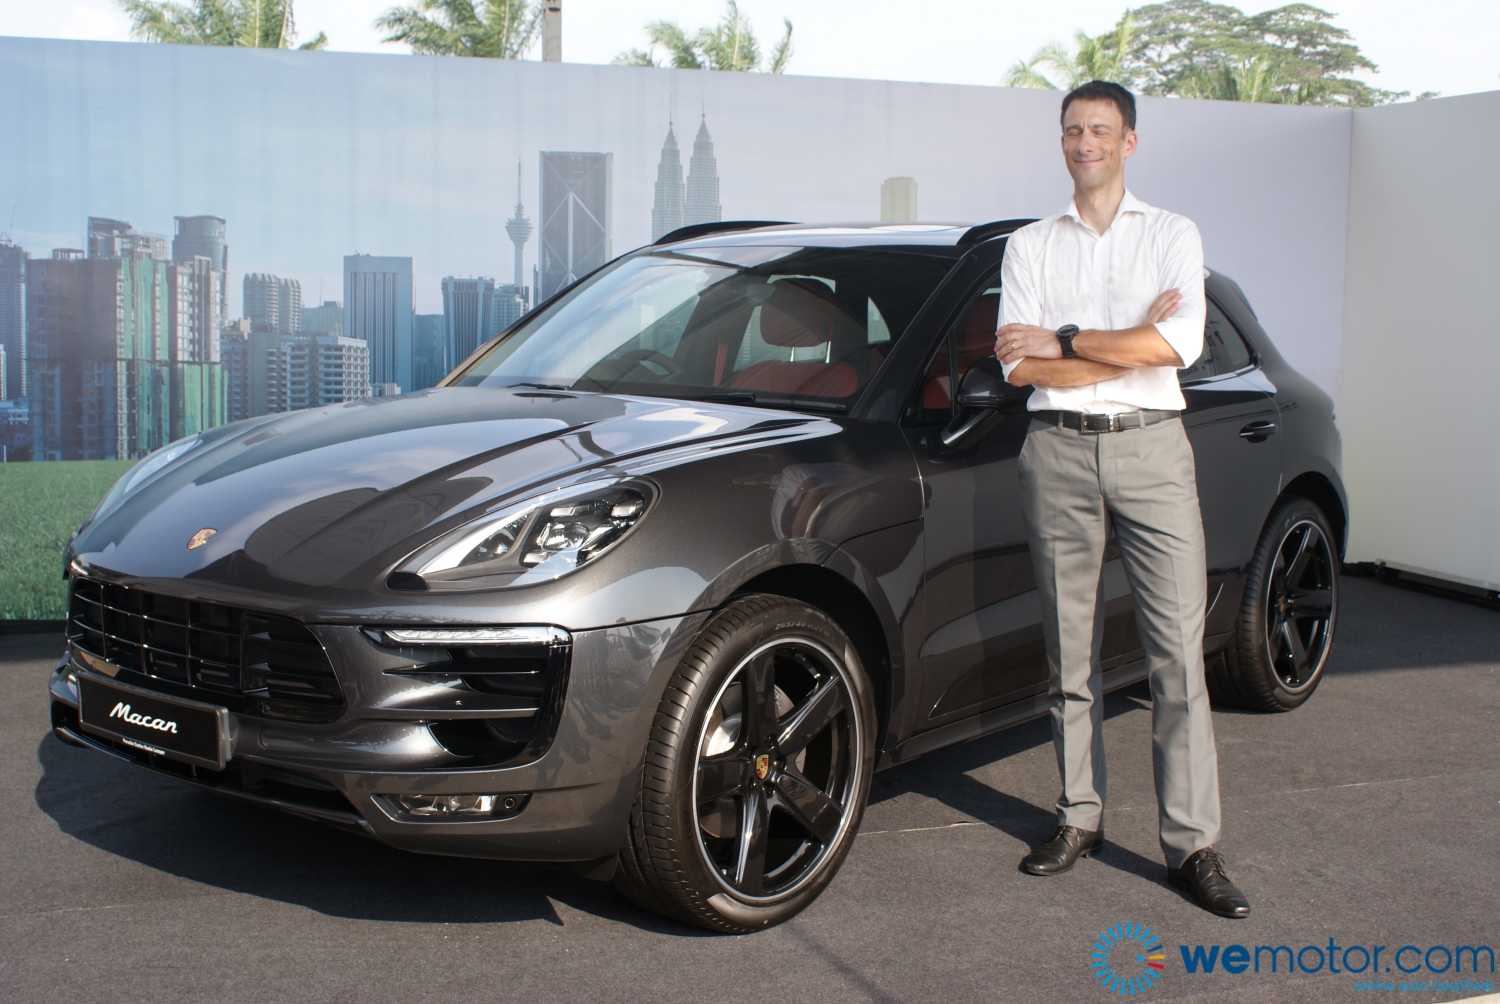 Launch 2016 Porsche Macan Facelift Price Tba Wemotor Com